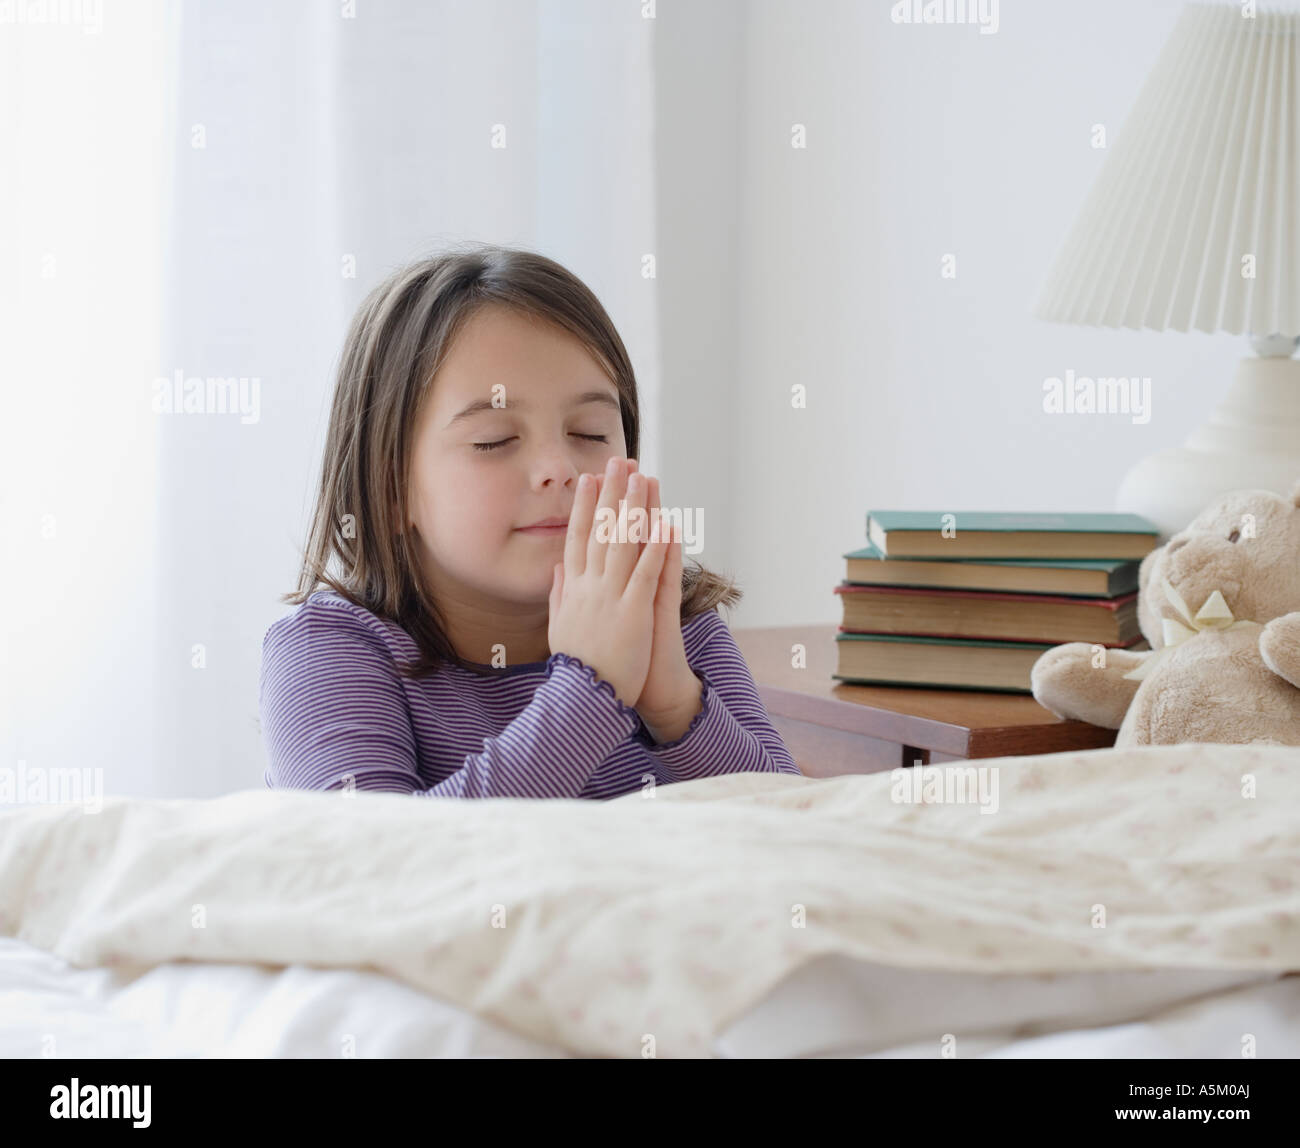 Girl praying next to bed - Stock Image